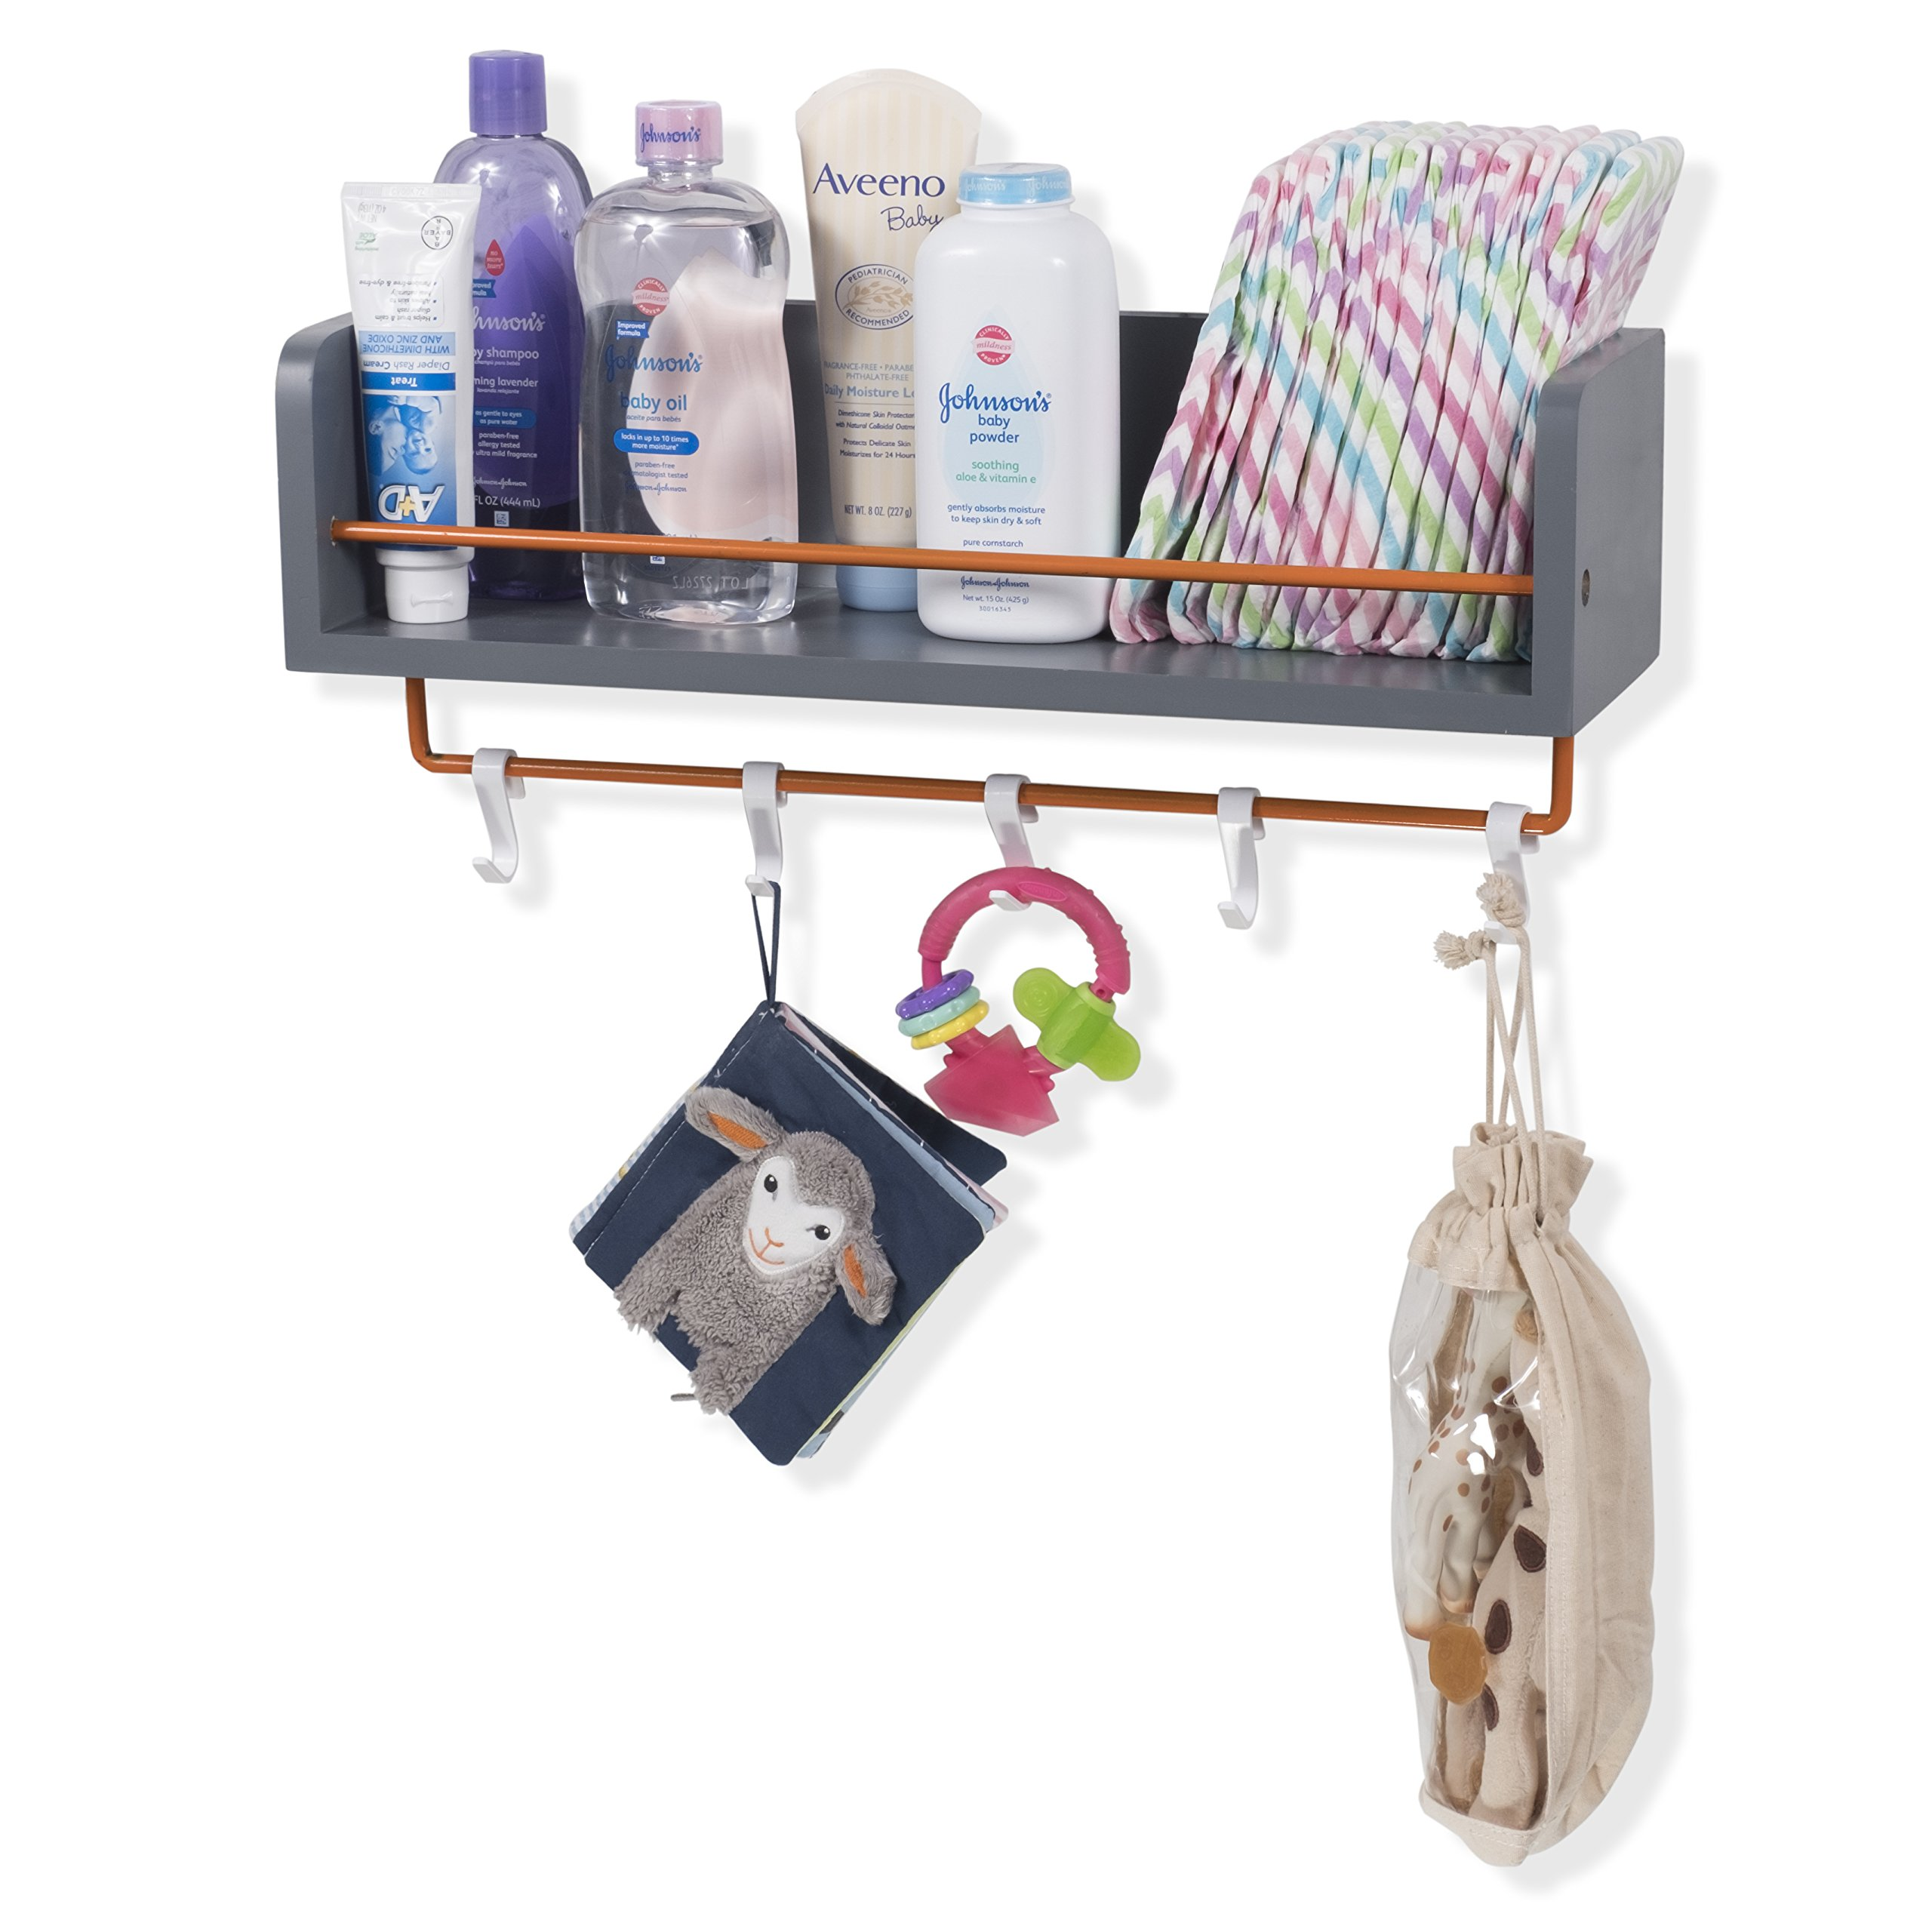 Rustic State Kid's Room Décor Stylish Wooden Floating Shelf with Orange Rails and S Hooks Gray 20 Inch